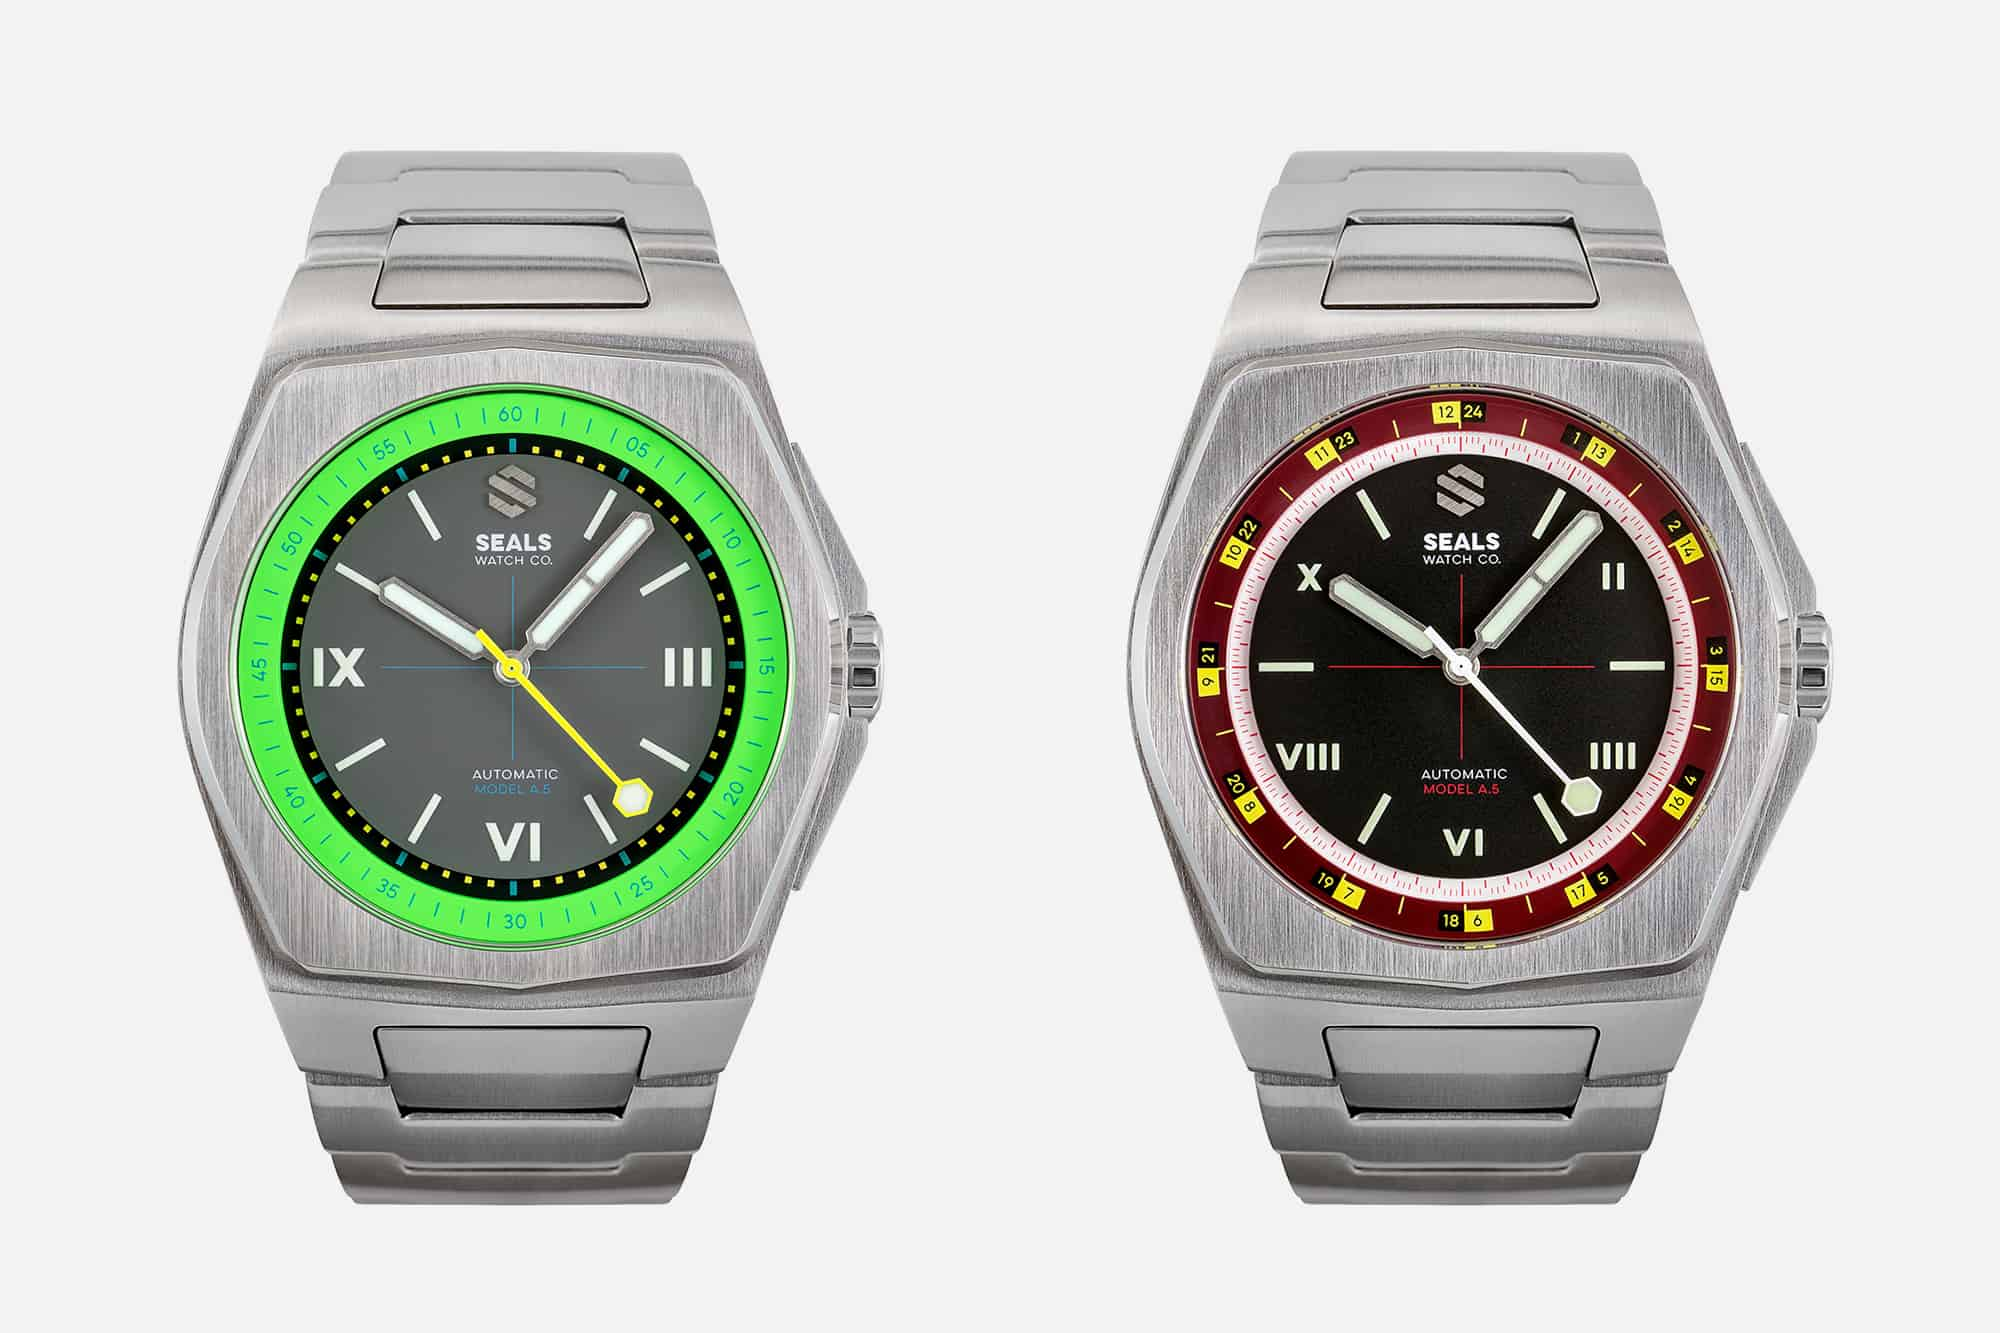 Seals Watch Co Model A.5 Automatic Watch | The Coolector